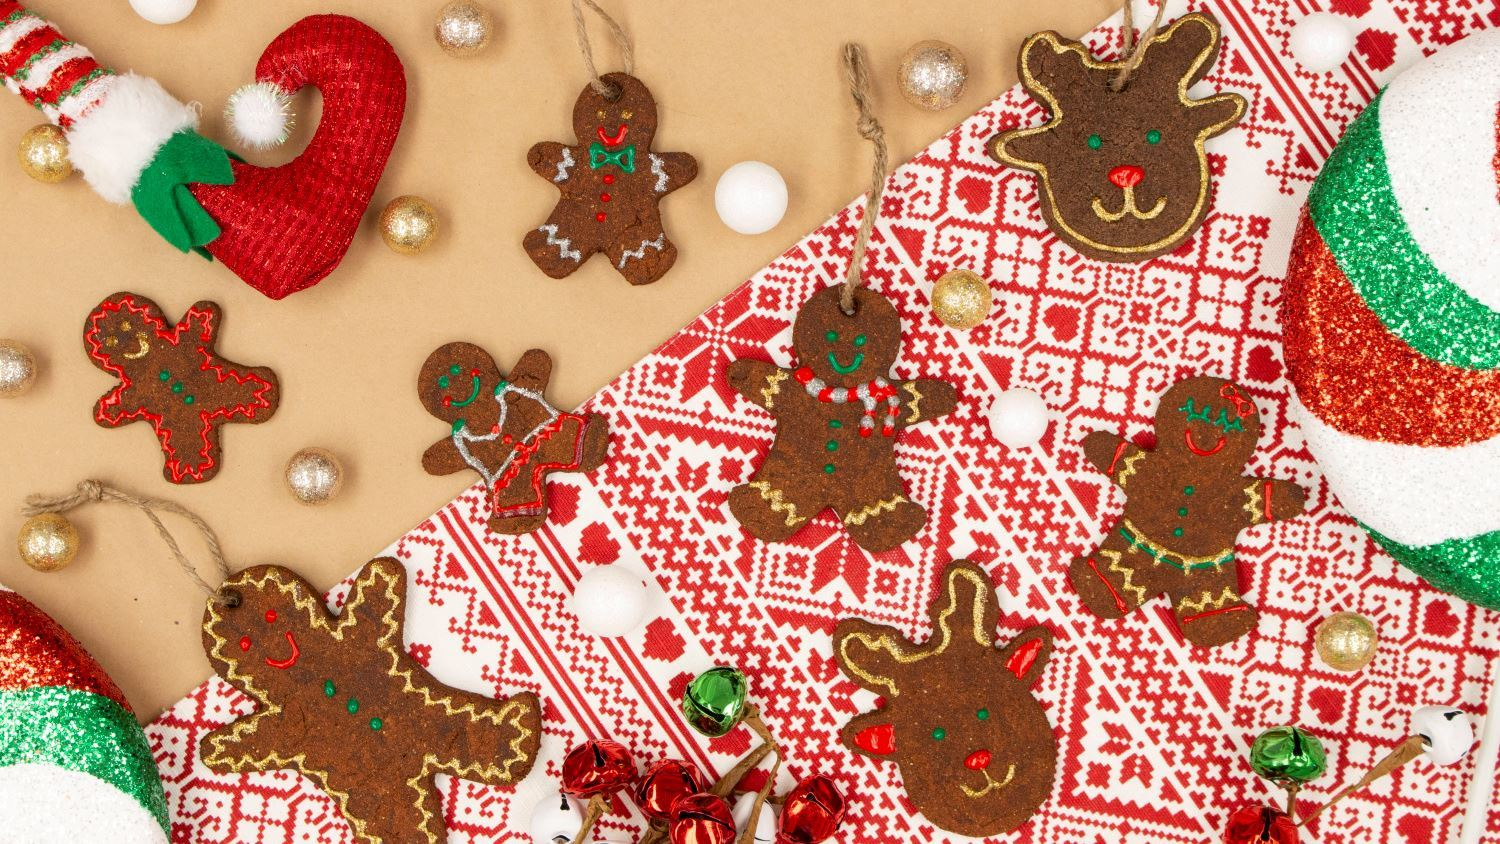 Cinnamon Dough Gingerbread Men Ornaments